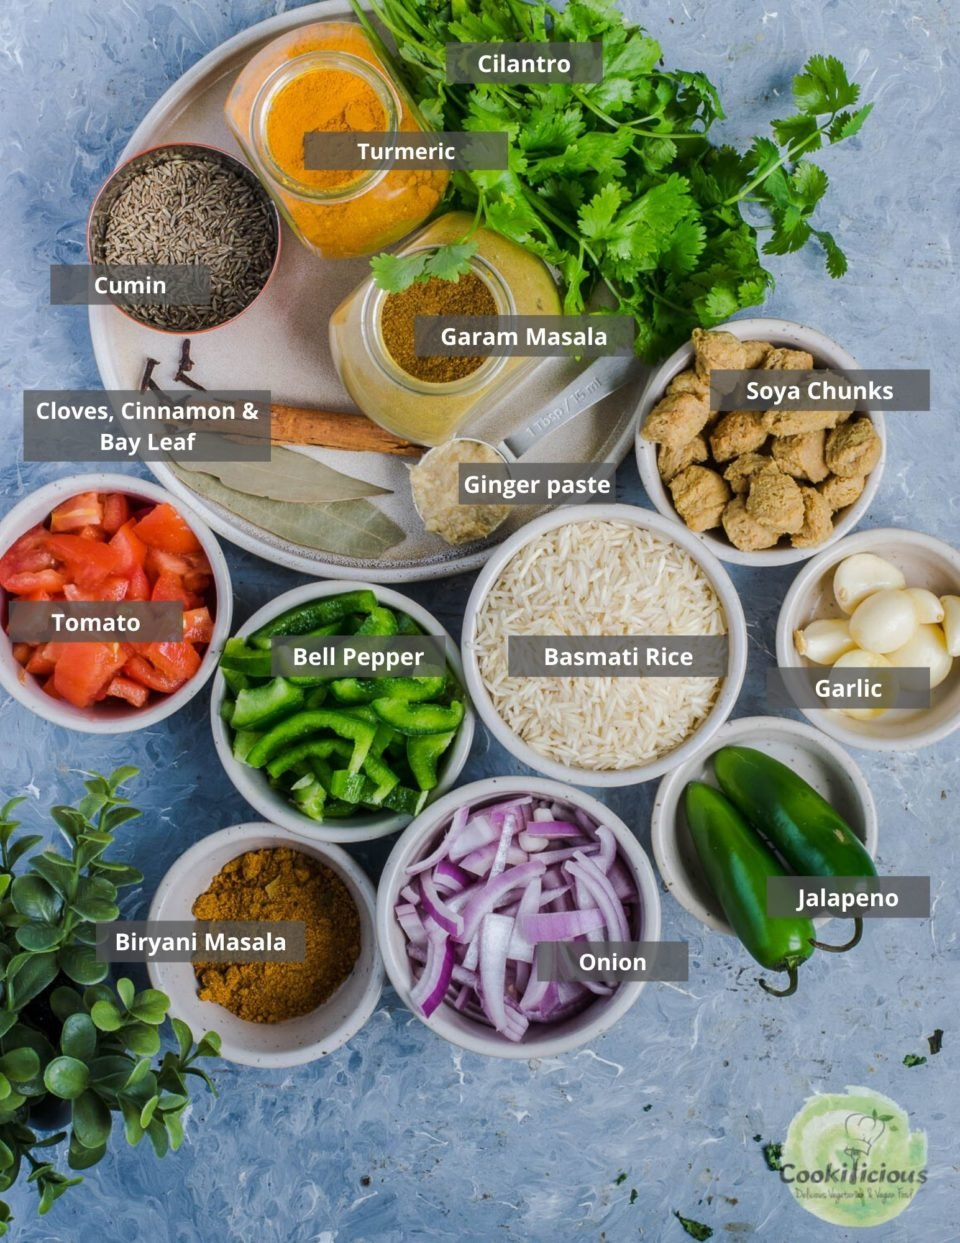 all the ingredients needed to make Soya Chunks Pulao  arranged in a tray